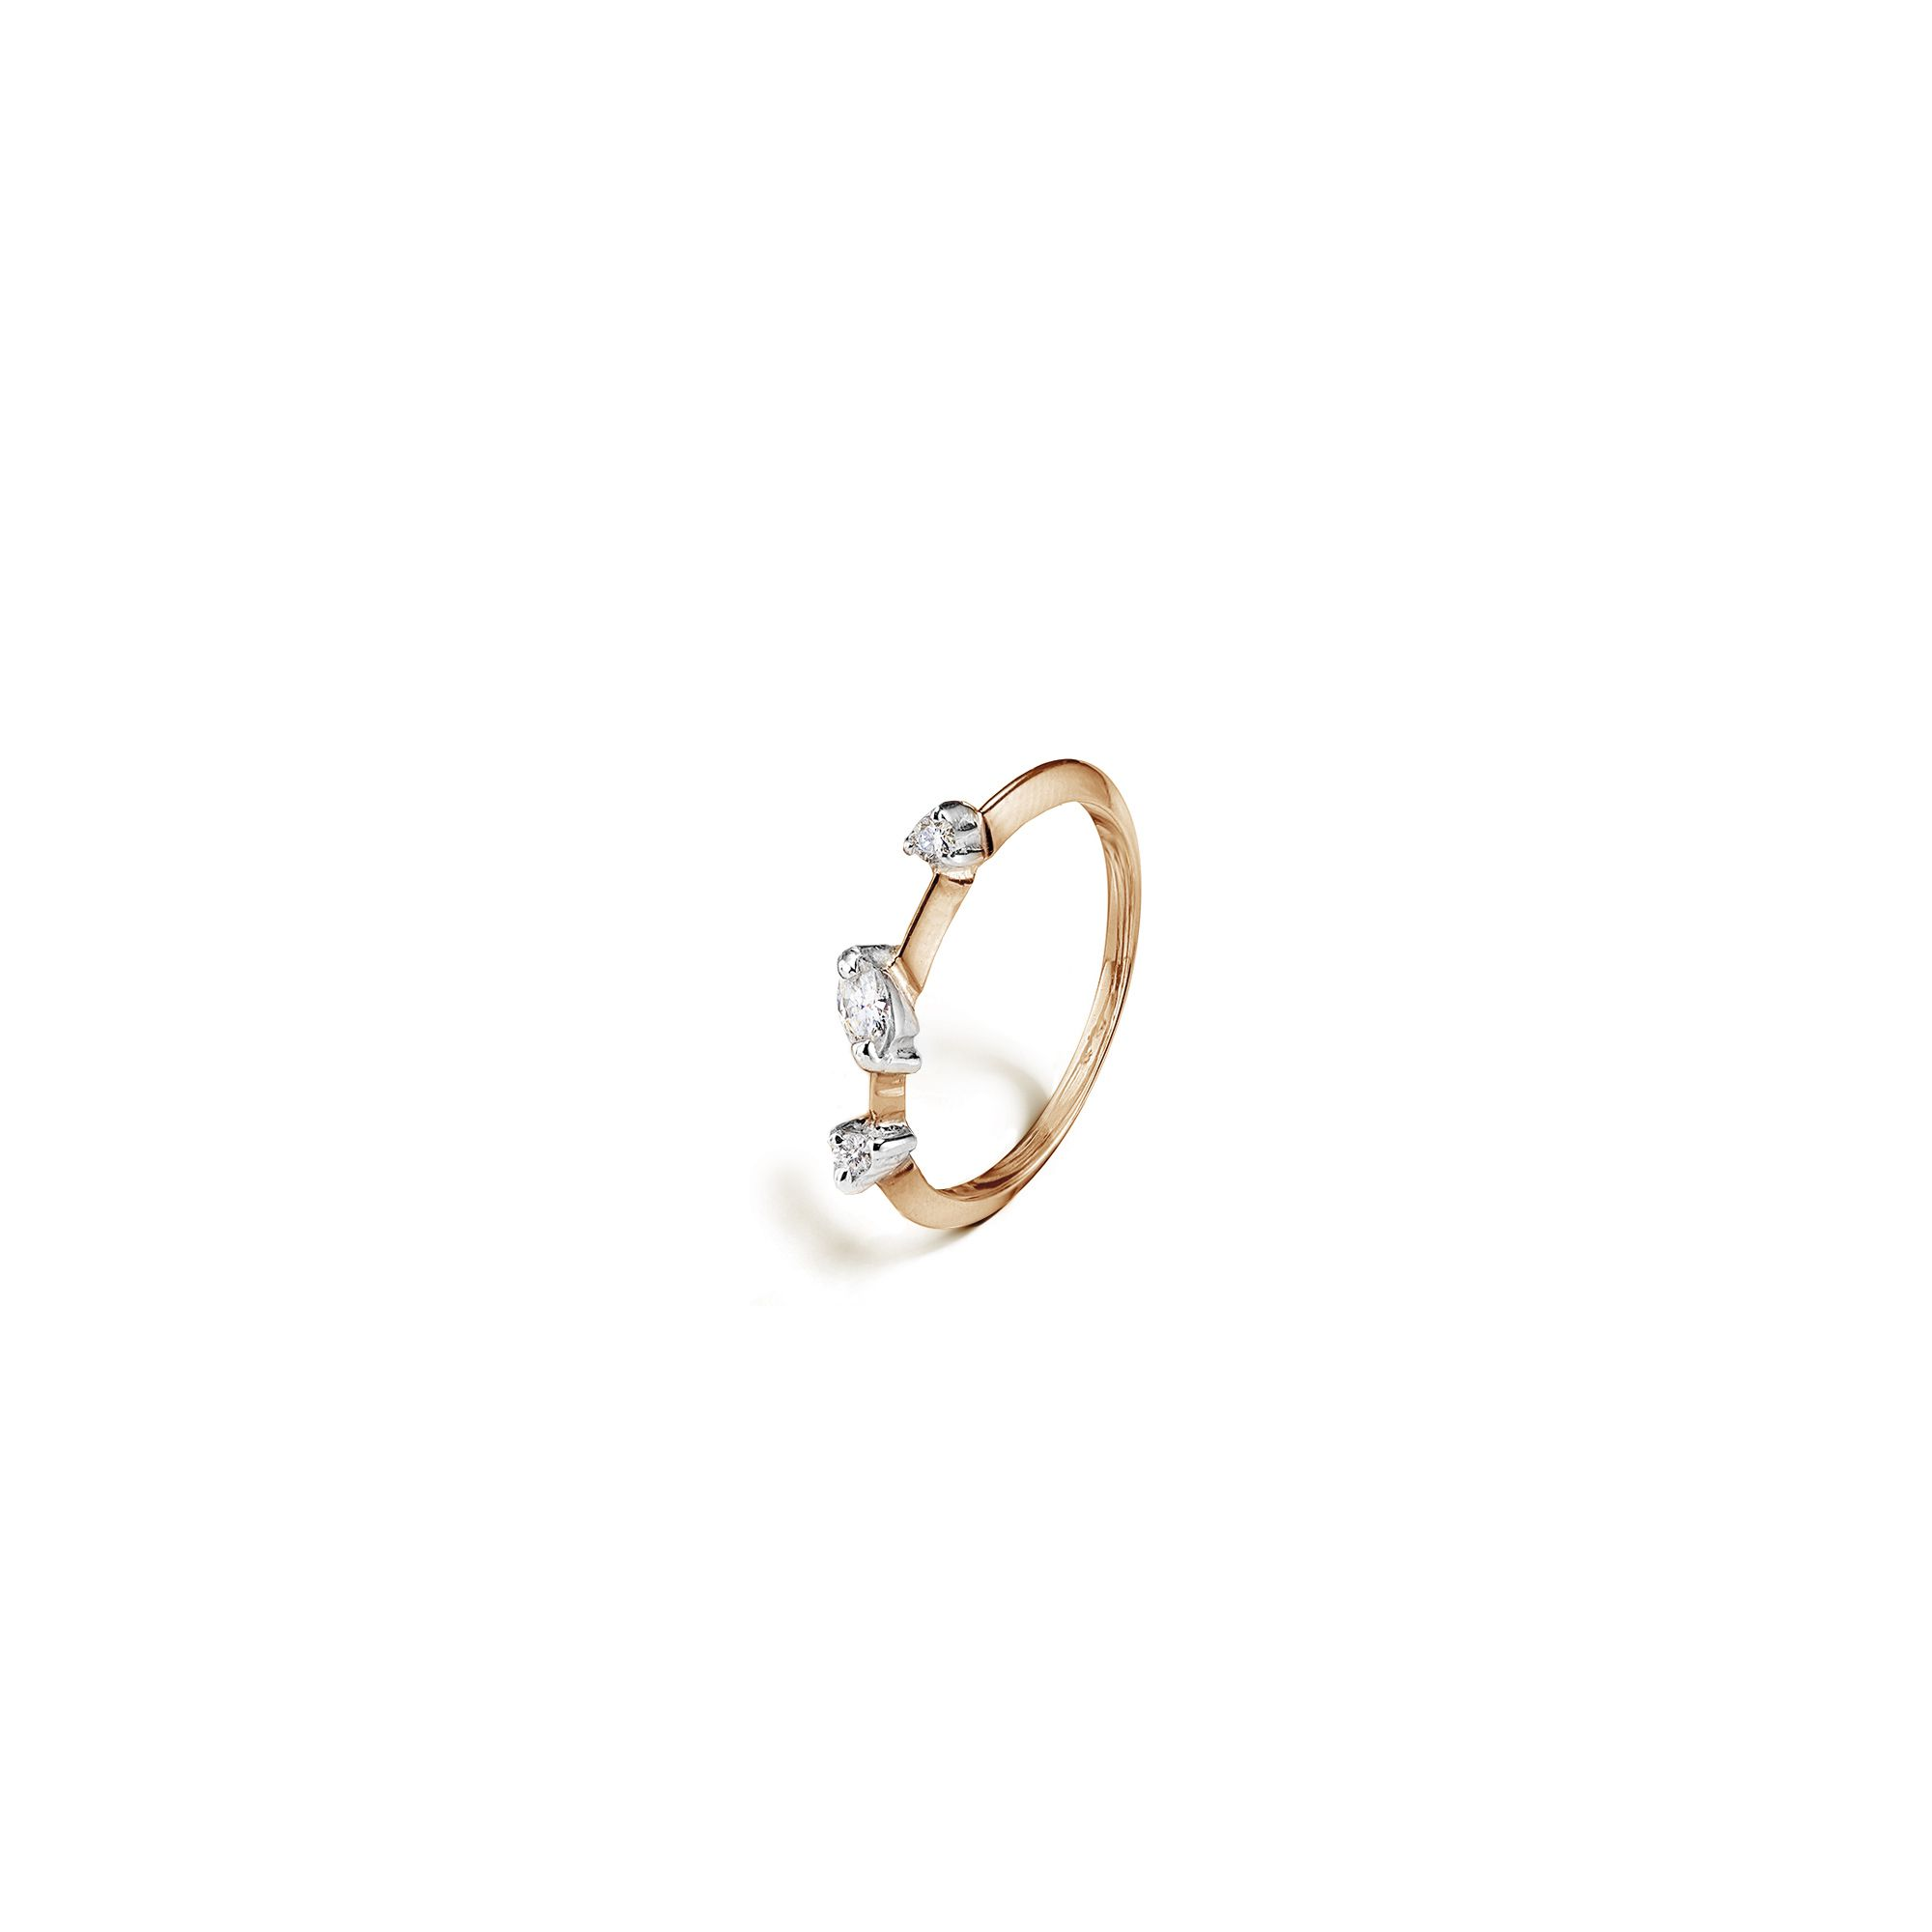 Rose gold 'Balance' ring Ring in rose gold and diamods